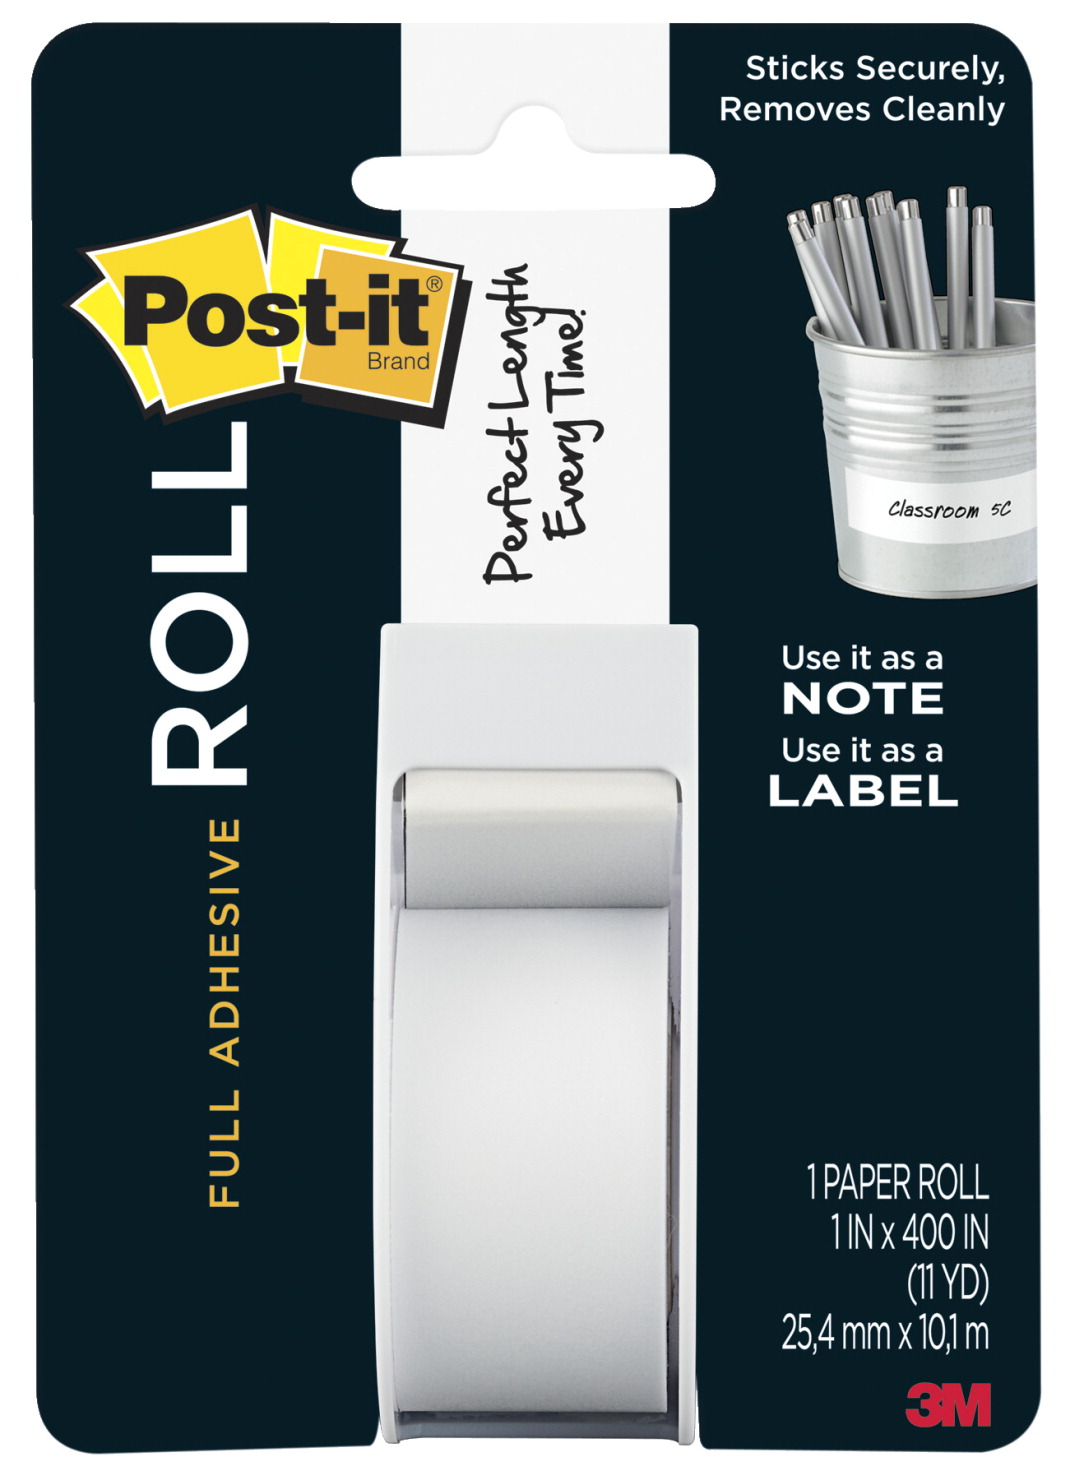 Post-it Full Adhesive Roll, 1 x 400 Inches, White